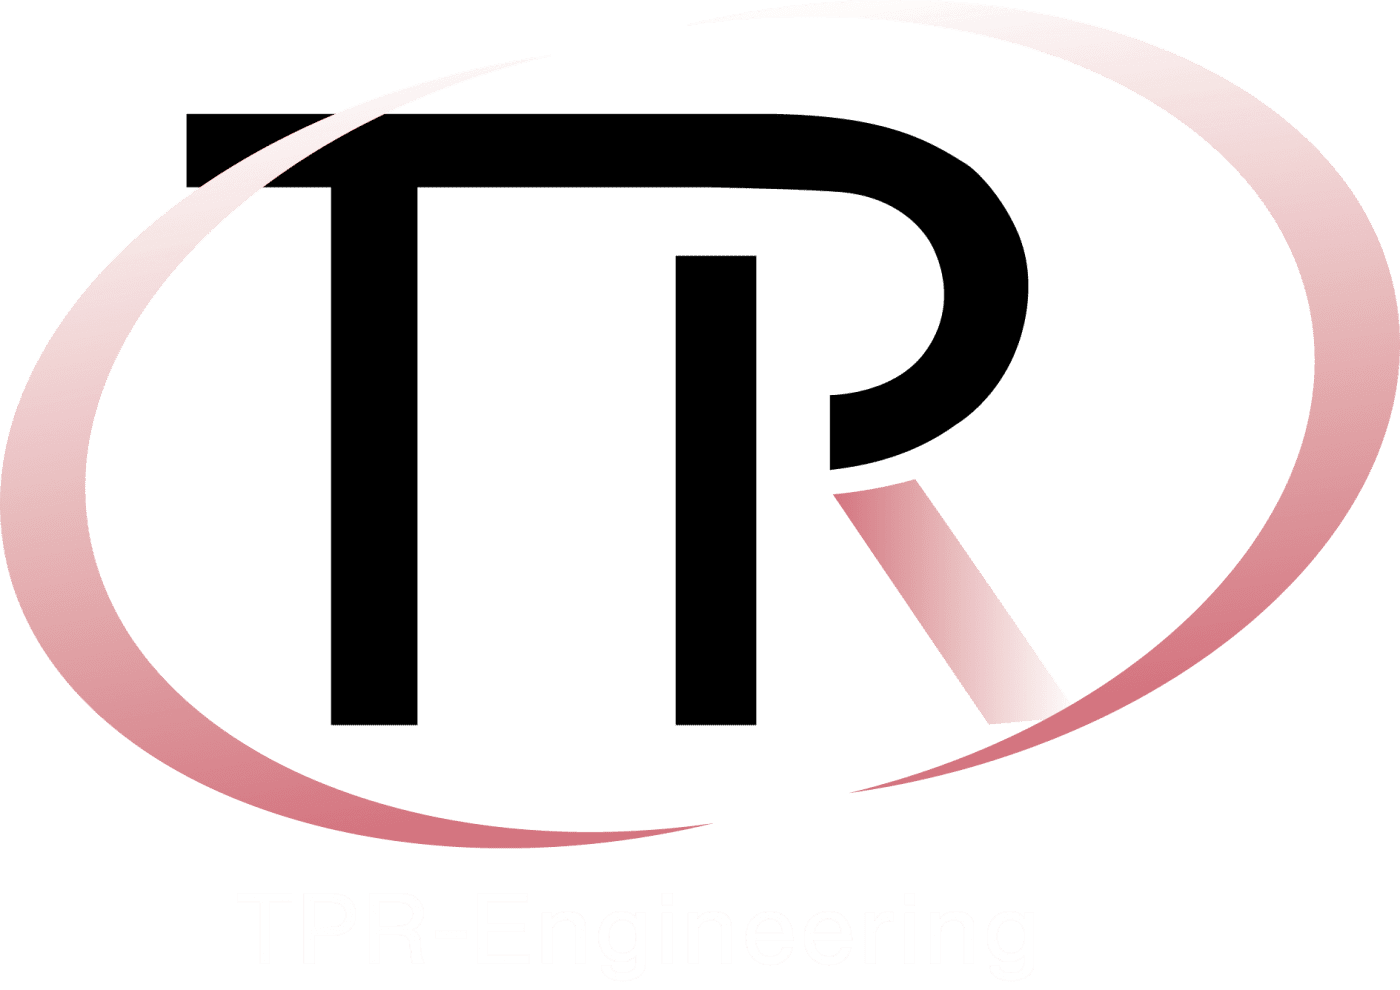 TPR-engineering